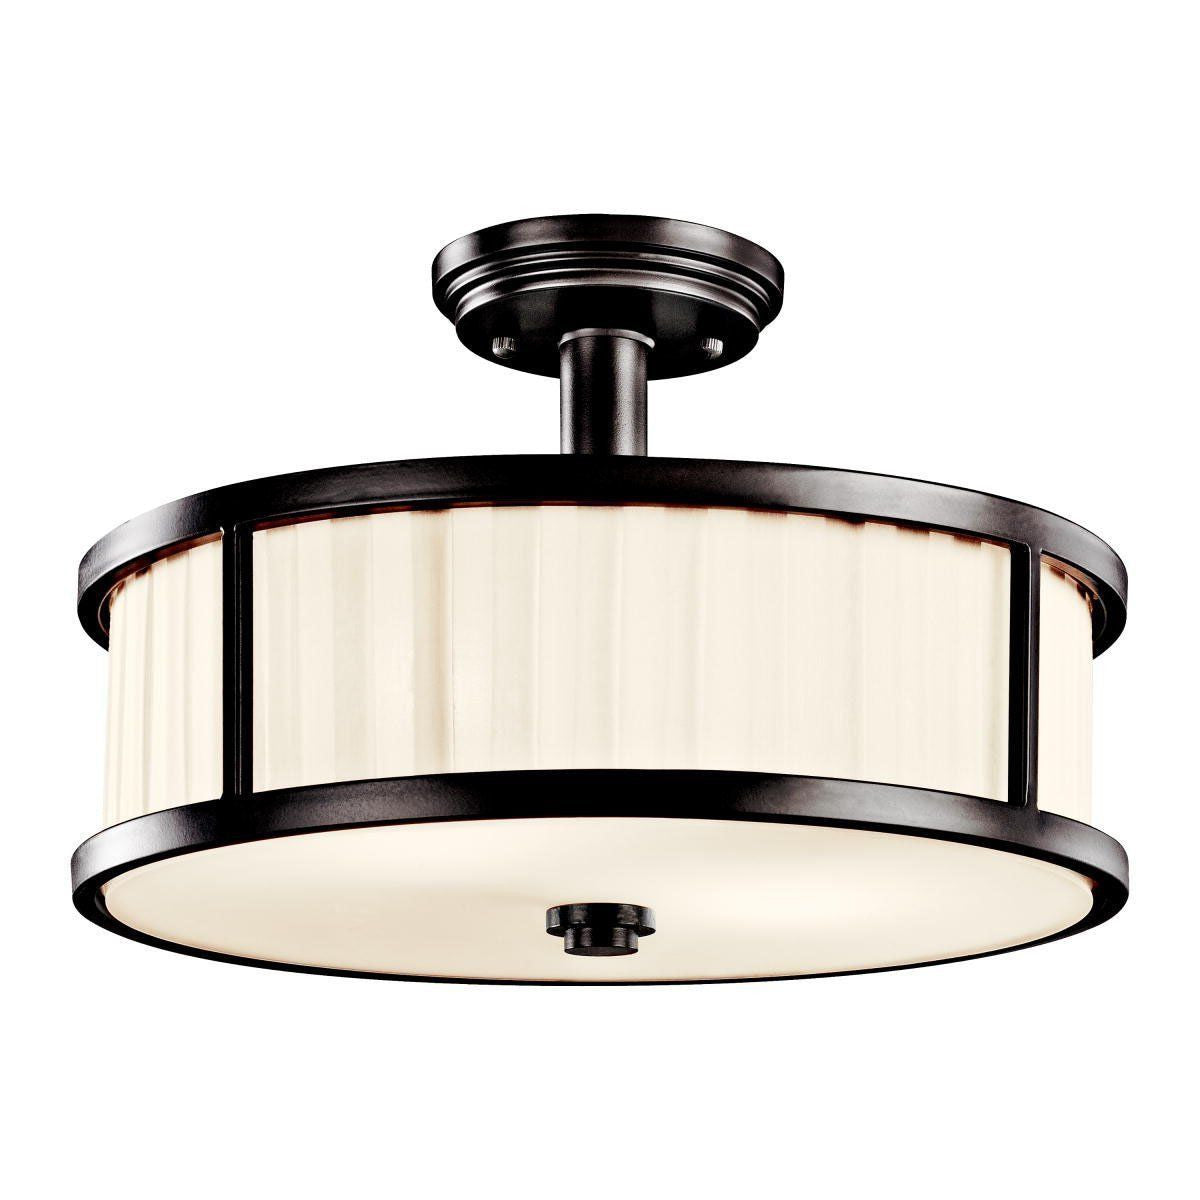 Aztec 38901 by kichler lighting camargo collection two light semi flush ceiling mount in olde bronze